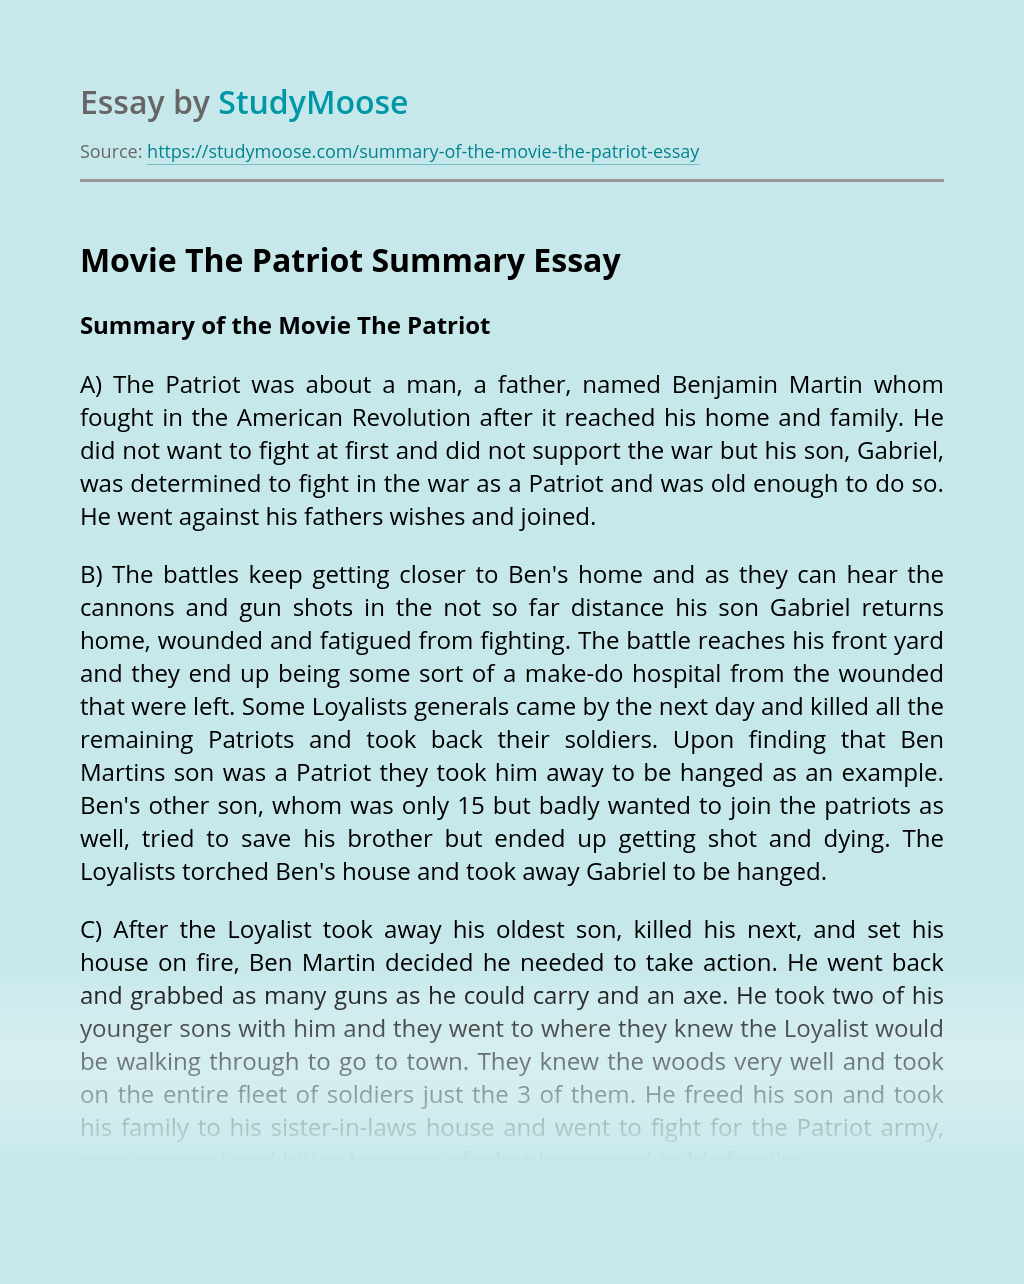 Movie The Patriot Summary